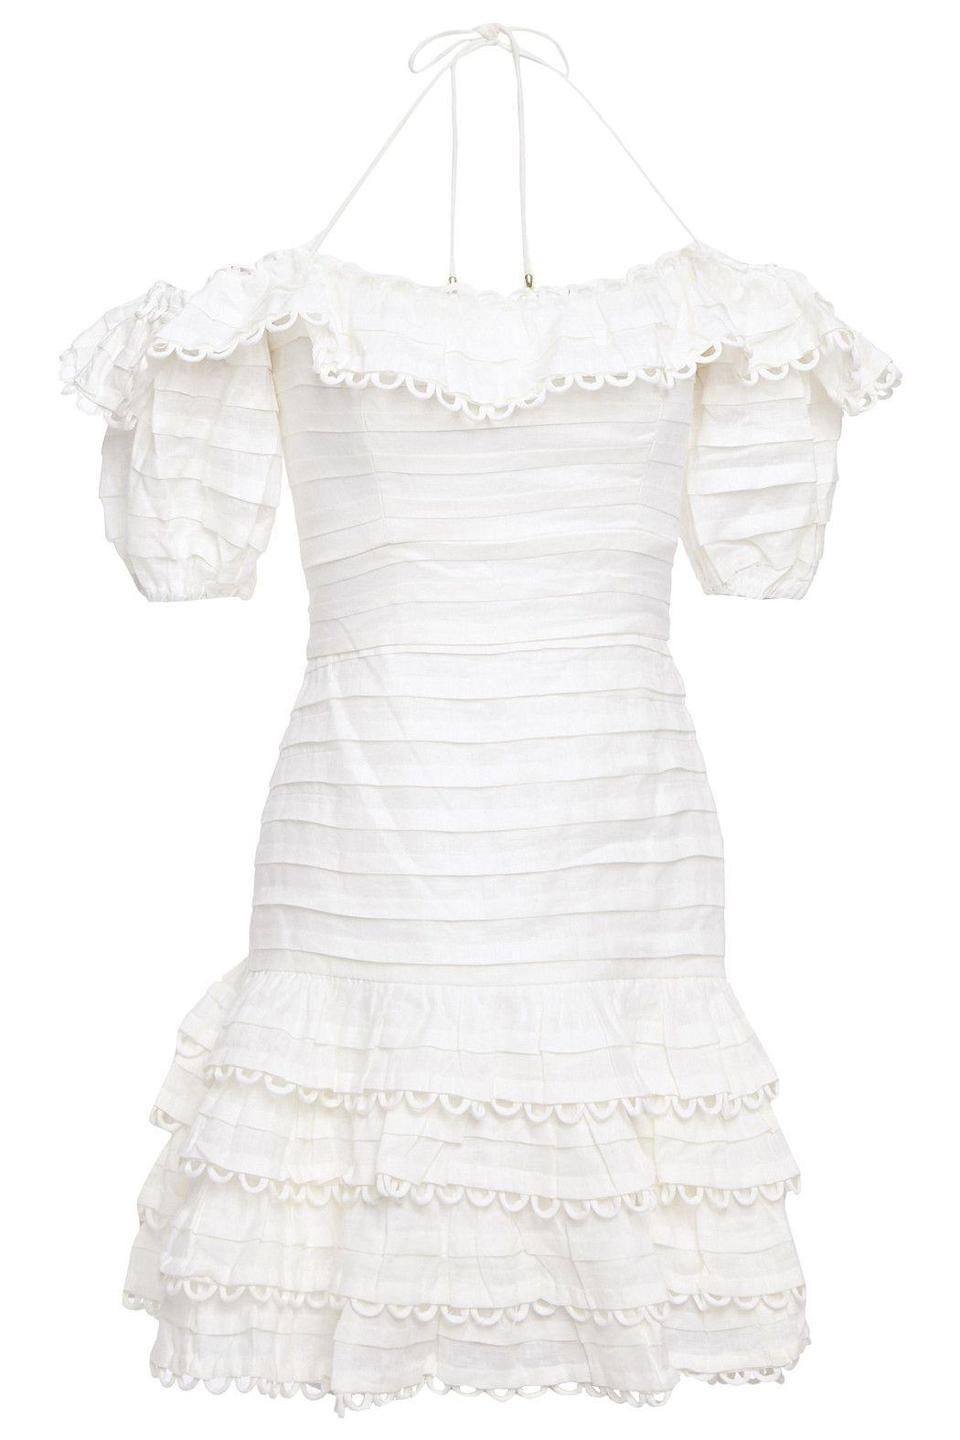 """<p><strong>ZIMMERMANN</strong></p><p>theoutnet.com</p><p><strong>$425.00</strong></p><p><a href=""""https://go.redirectingat.com?id=74968X1596630&url=https%3A%2F%2Fwww.theoutnet.com%2Fen-us%2Fshop%2Fproduct%2Fzimmermann%2Fdresses%2Fmini-dress%2Fallia-pintuck-off-the-shoulder-ruffled-linen-mini-dress%2F2499567818787547&sref=https%3A%2F%2Fwww.redbookmag.com%2Ffashion%2Fg34807151%2Fthe-outnets-black-friday-sale-2020%2F"""" rel=""""nofollow noopener"""" target=""""_blank"""" data-ylk=""""slk:Shop Now"""" class=""""link rapid-noclick-resp"""">Shop Now</a></p><p>This sweet LWD deserves to hang in your wardrobe. </p>"""